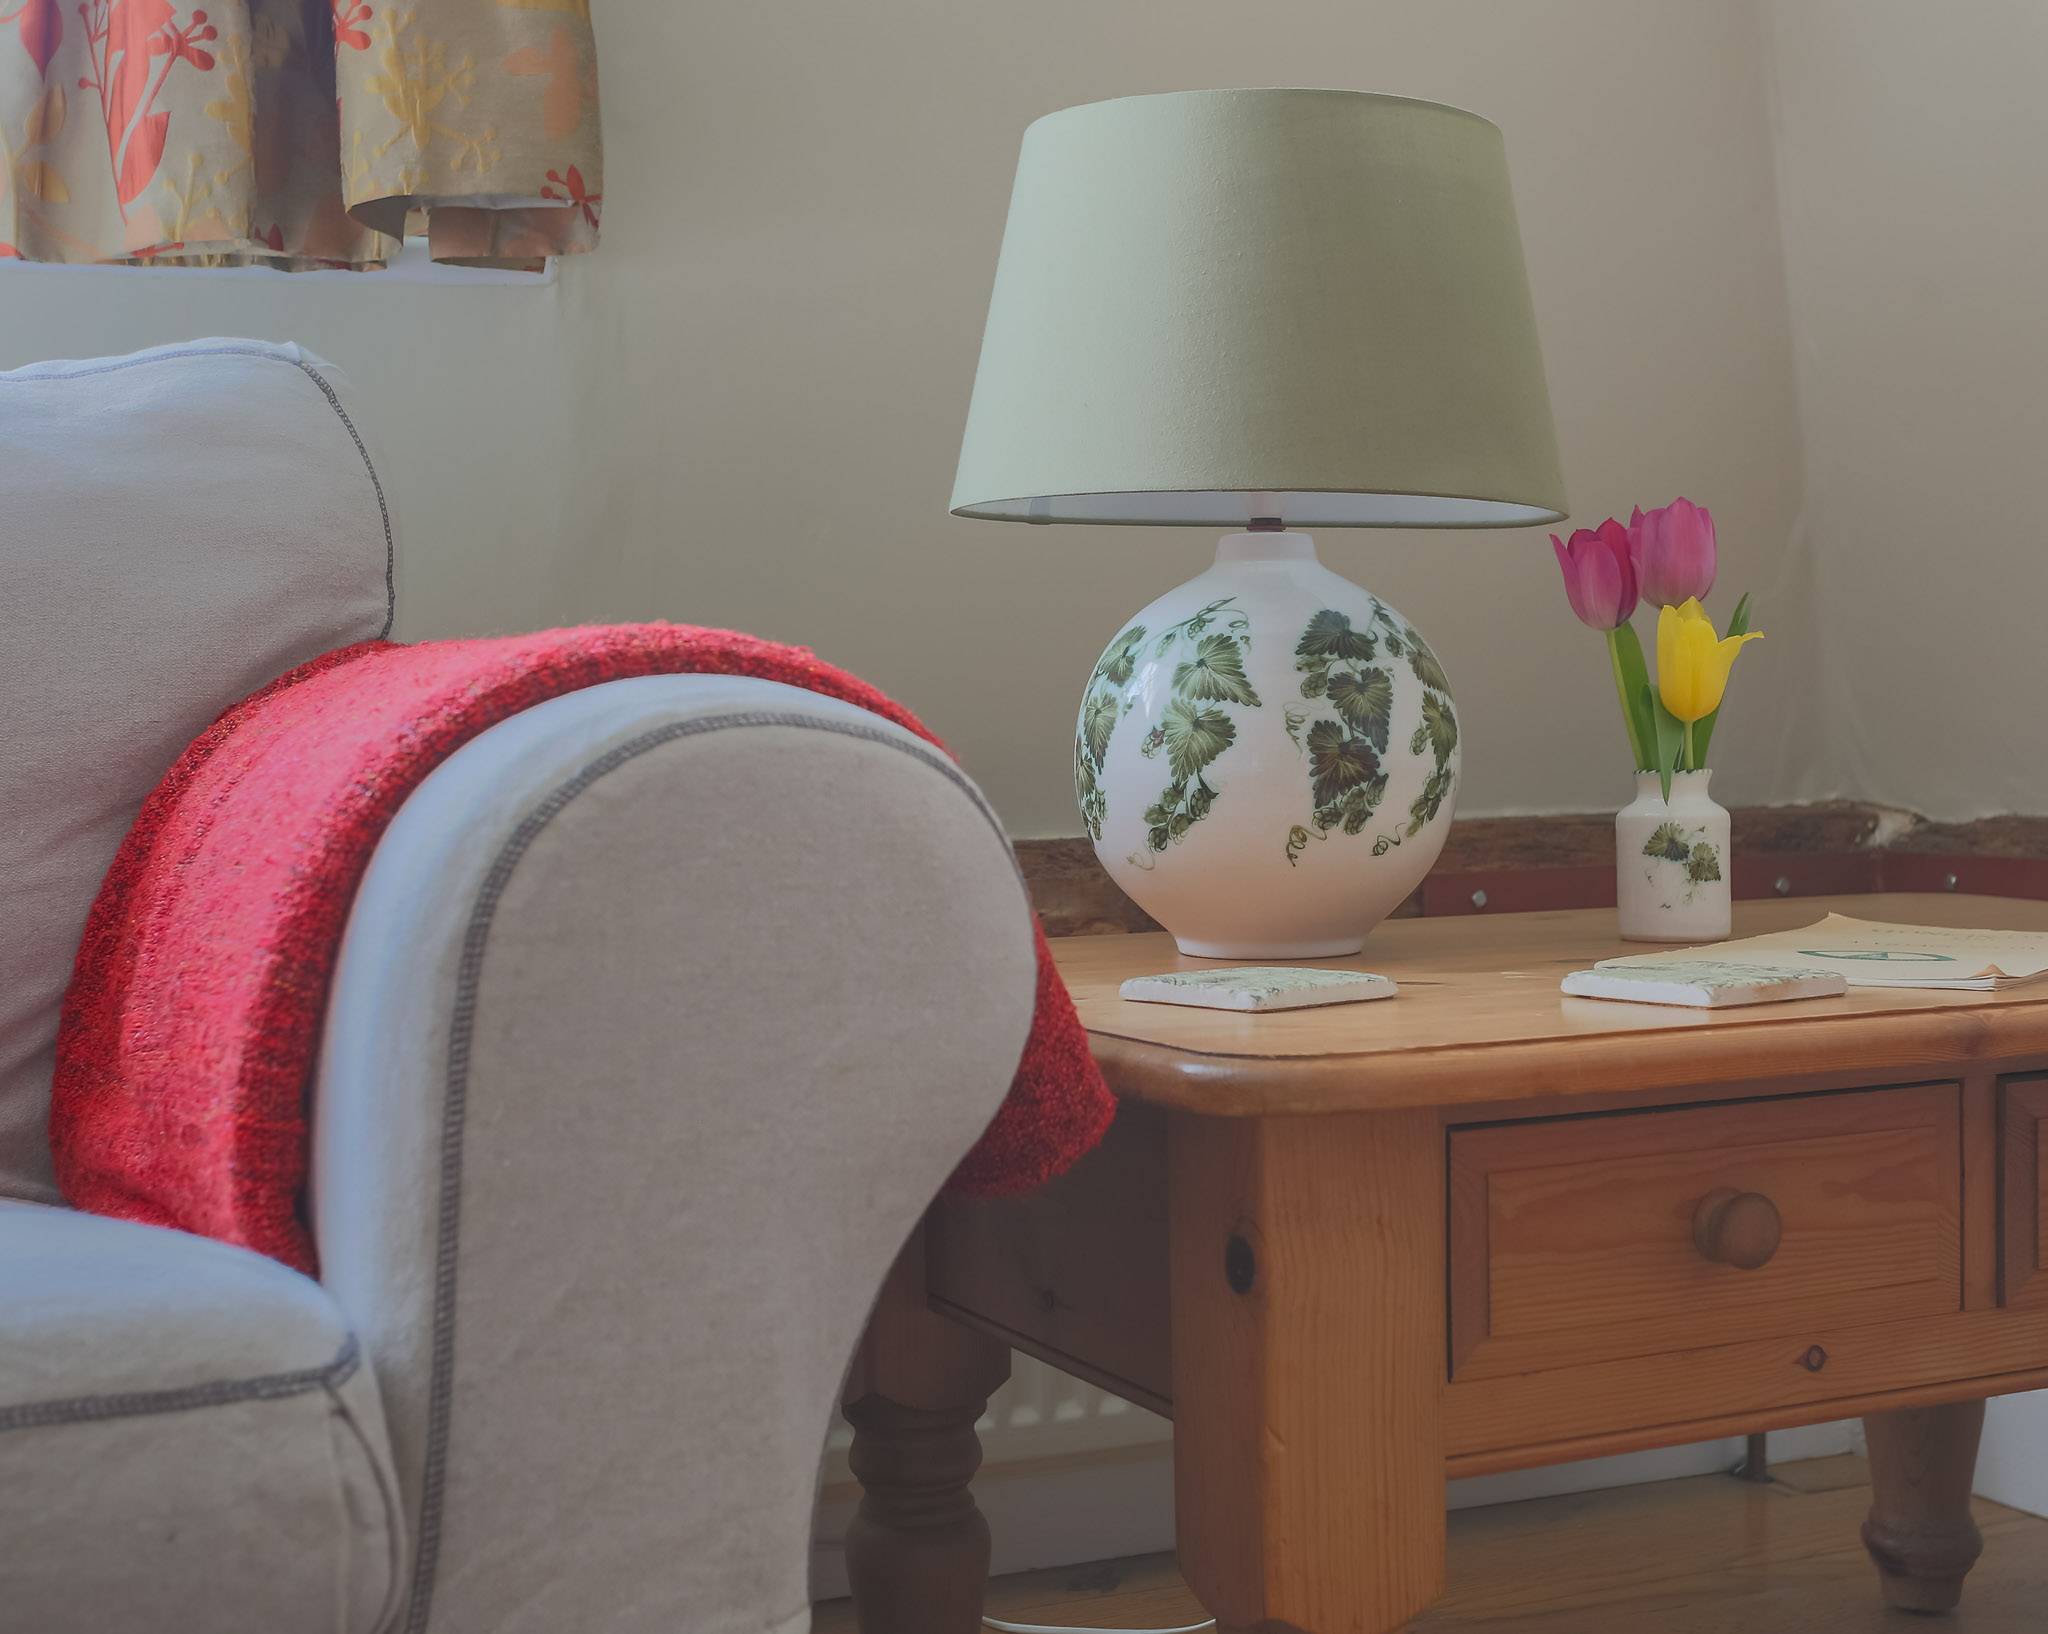 There are lots of little touches to make you feel at home